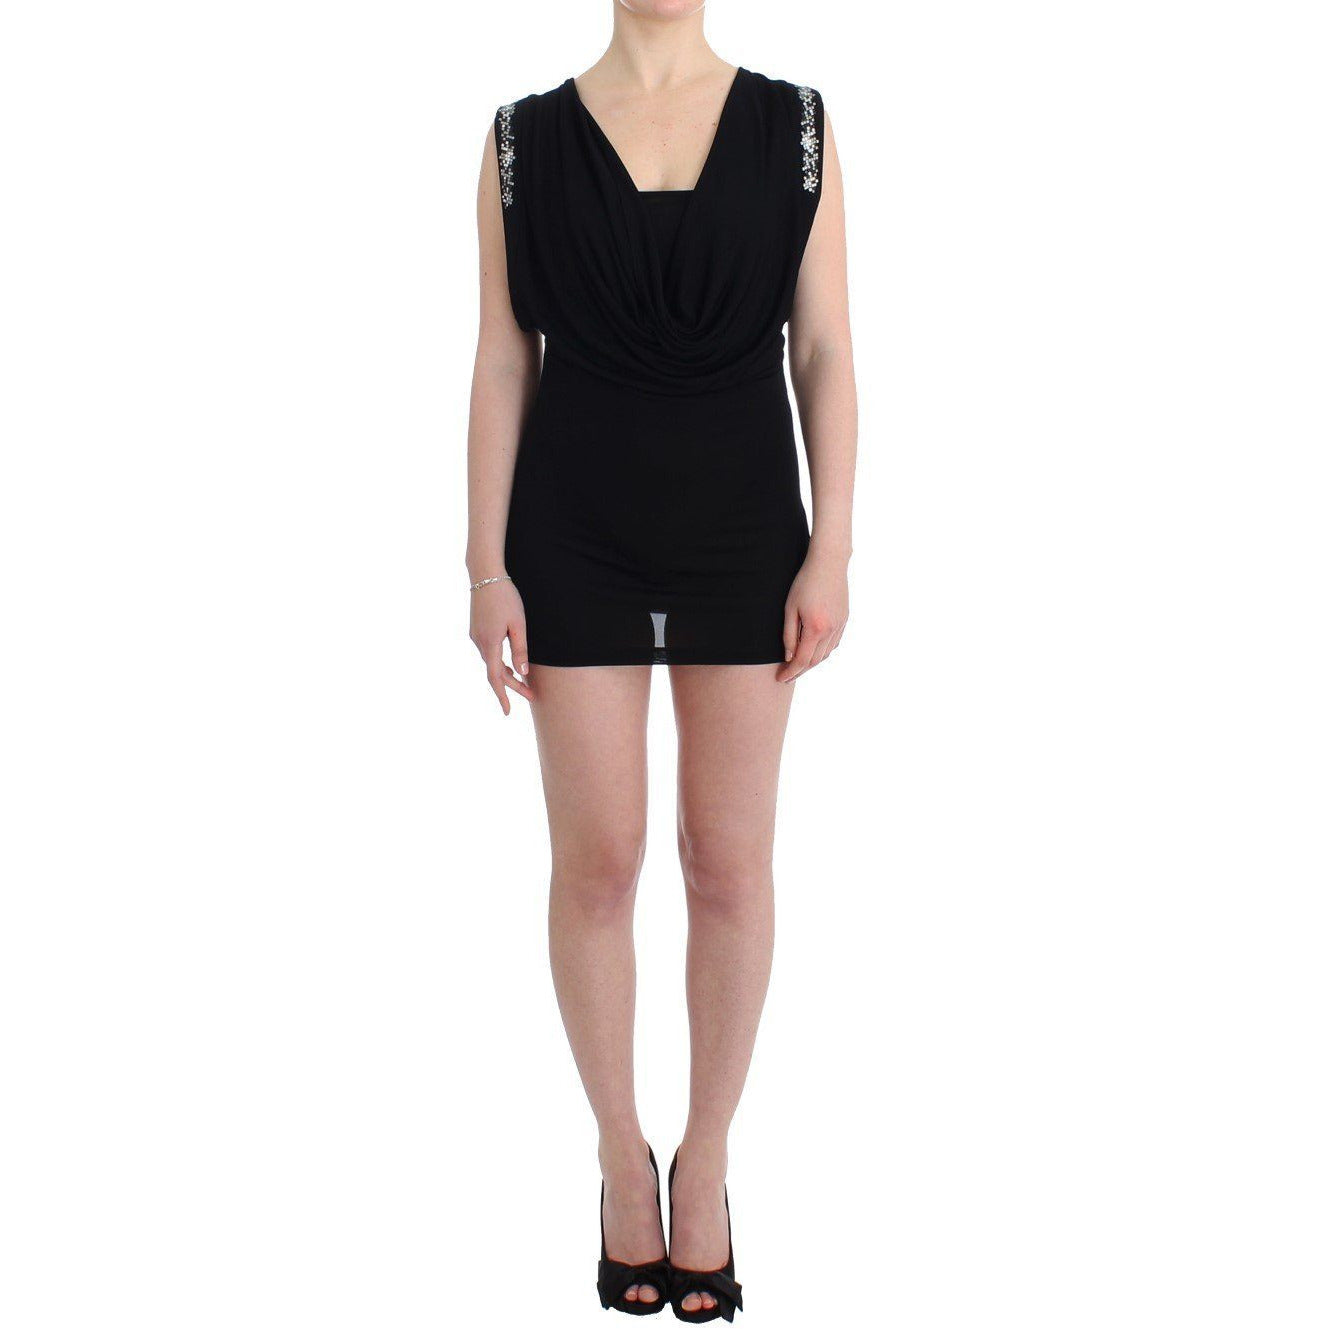 Black Embellished Jersey Mini Sheath Short Dress Roccobarocco